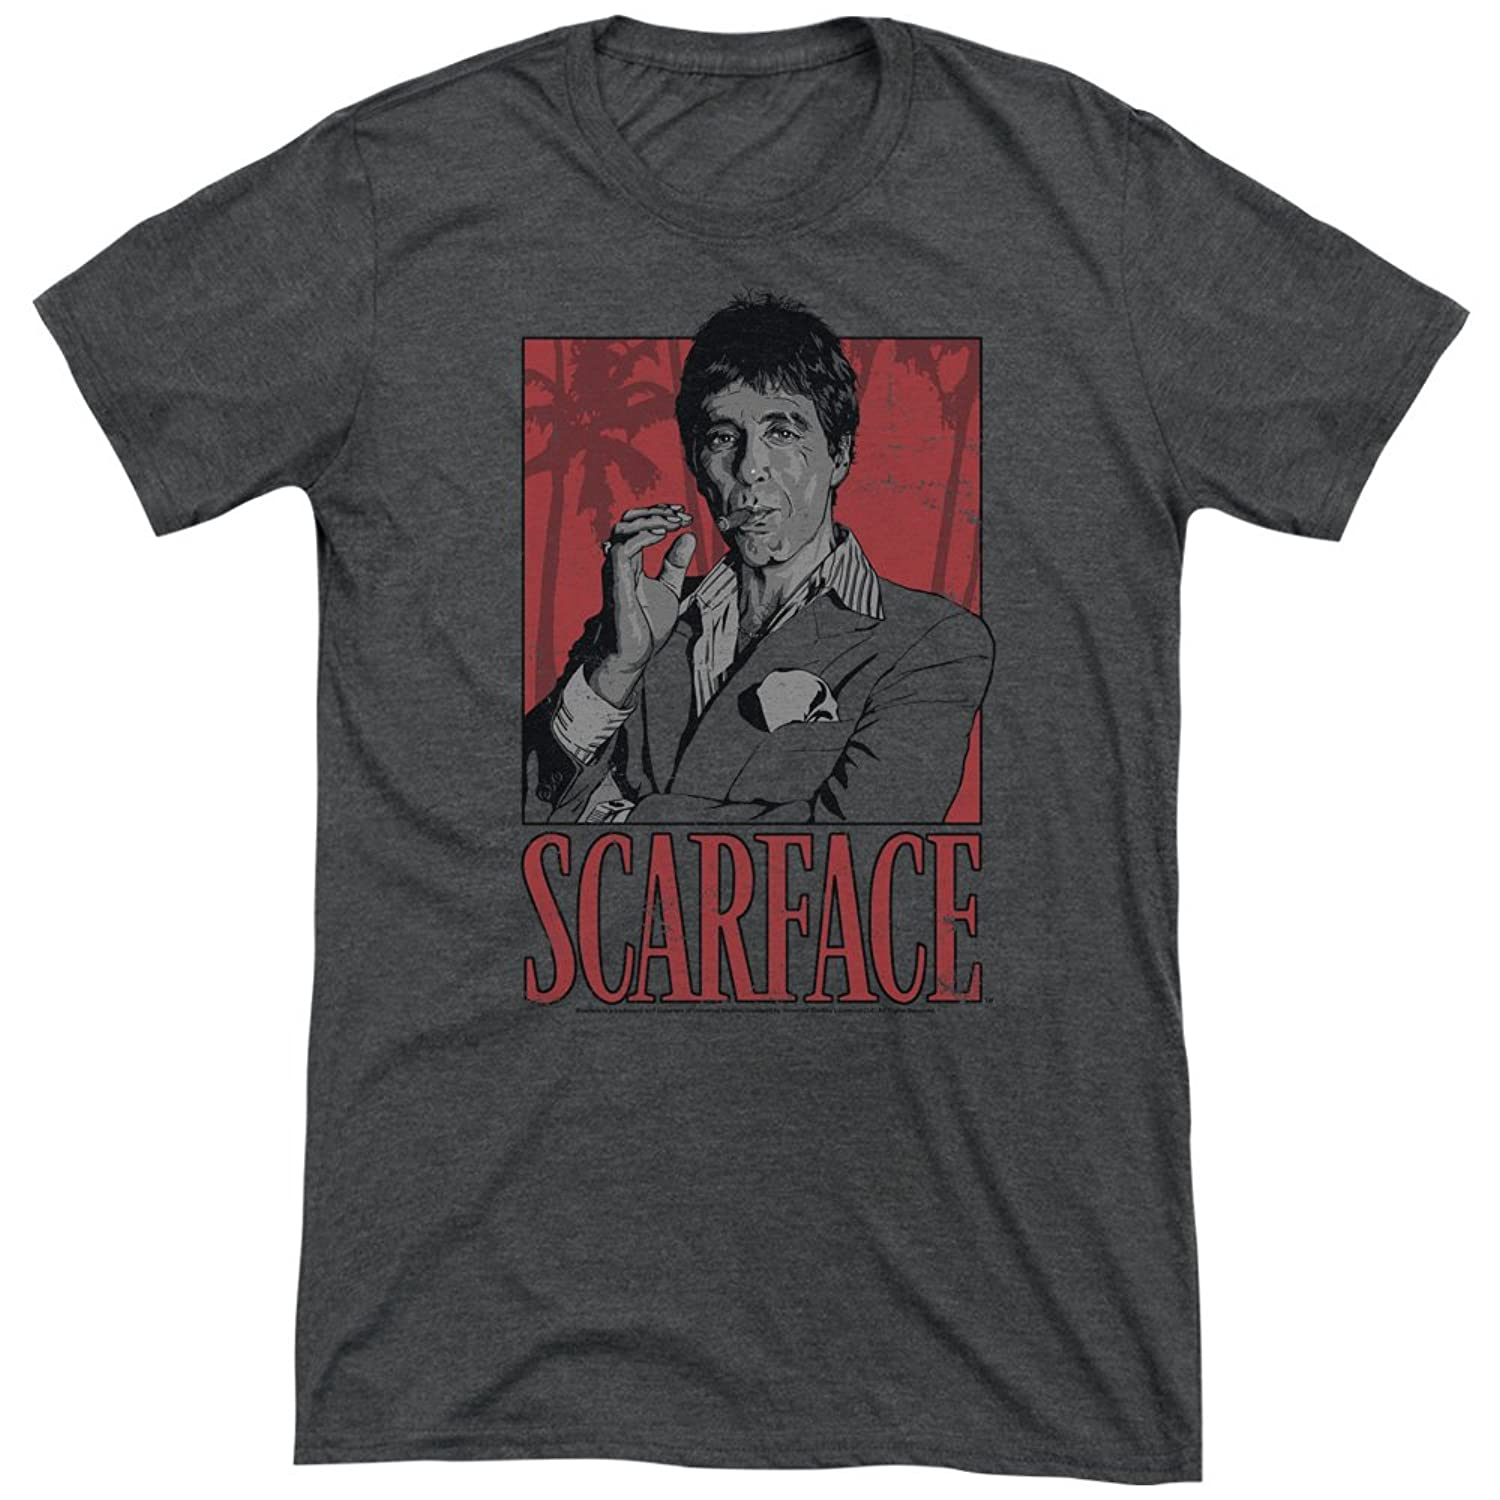 Scarface Men's Tony Tri-Blend T-Shirt